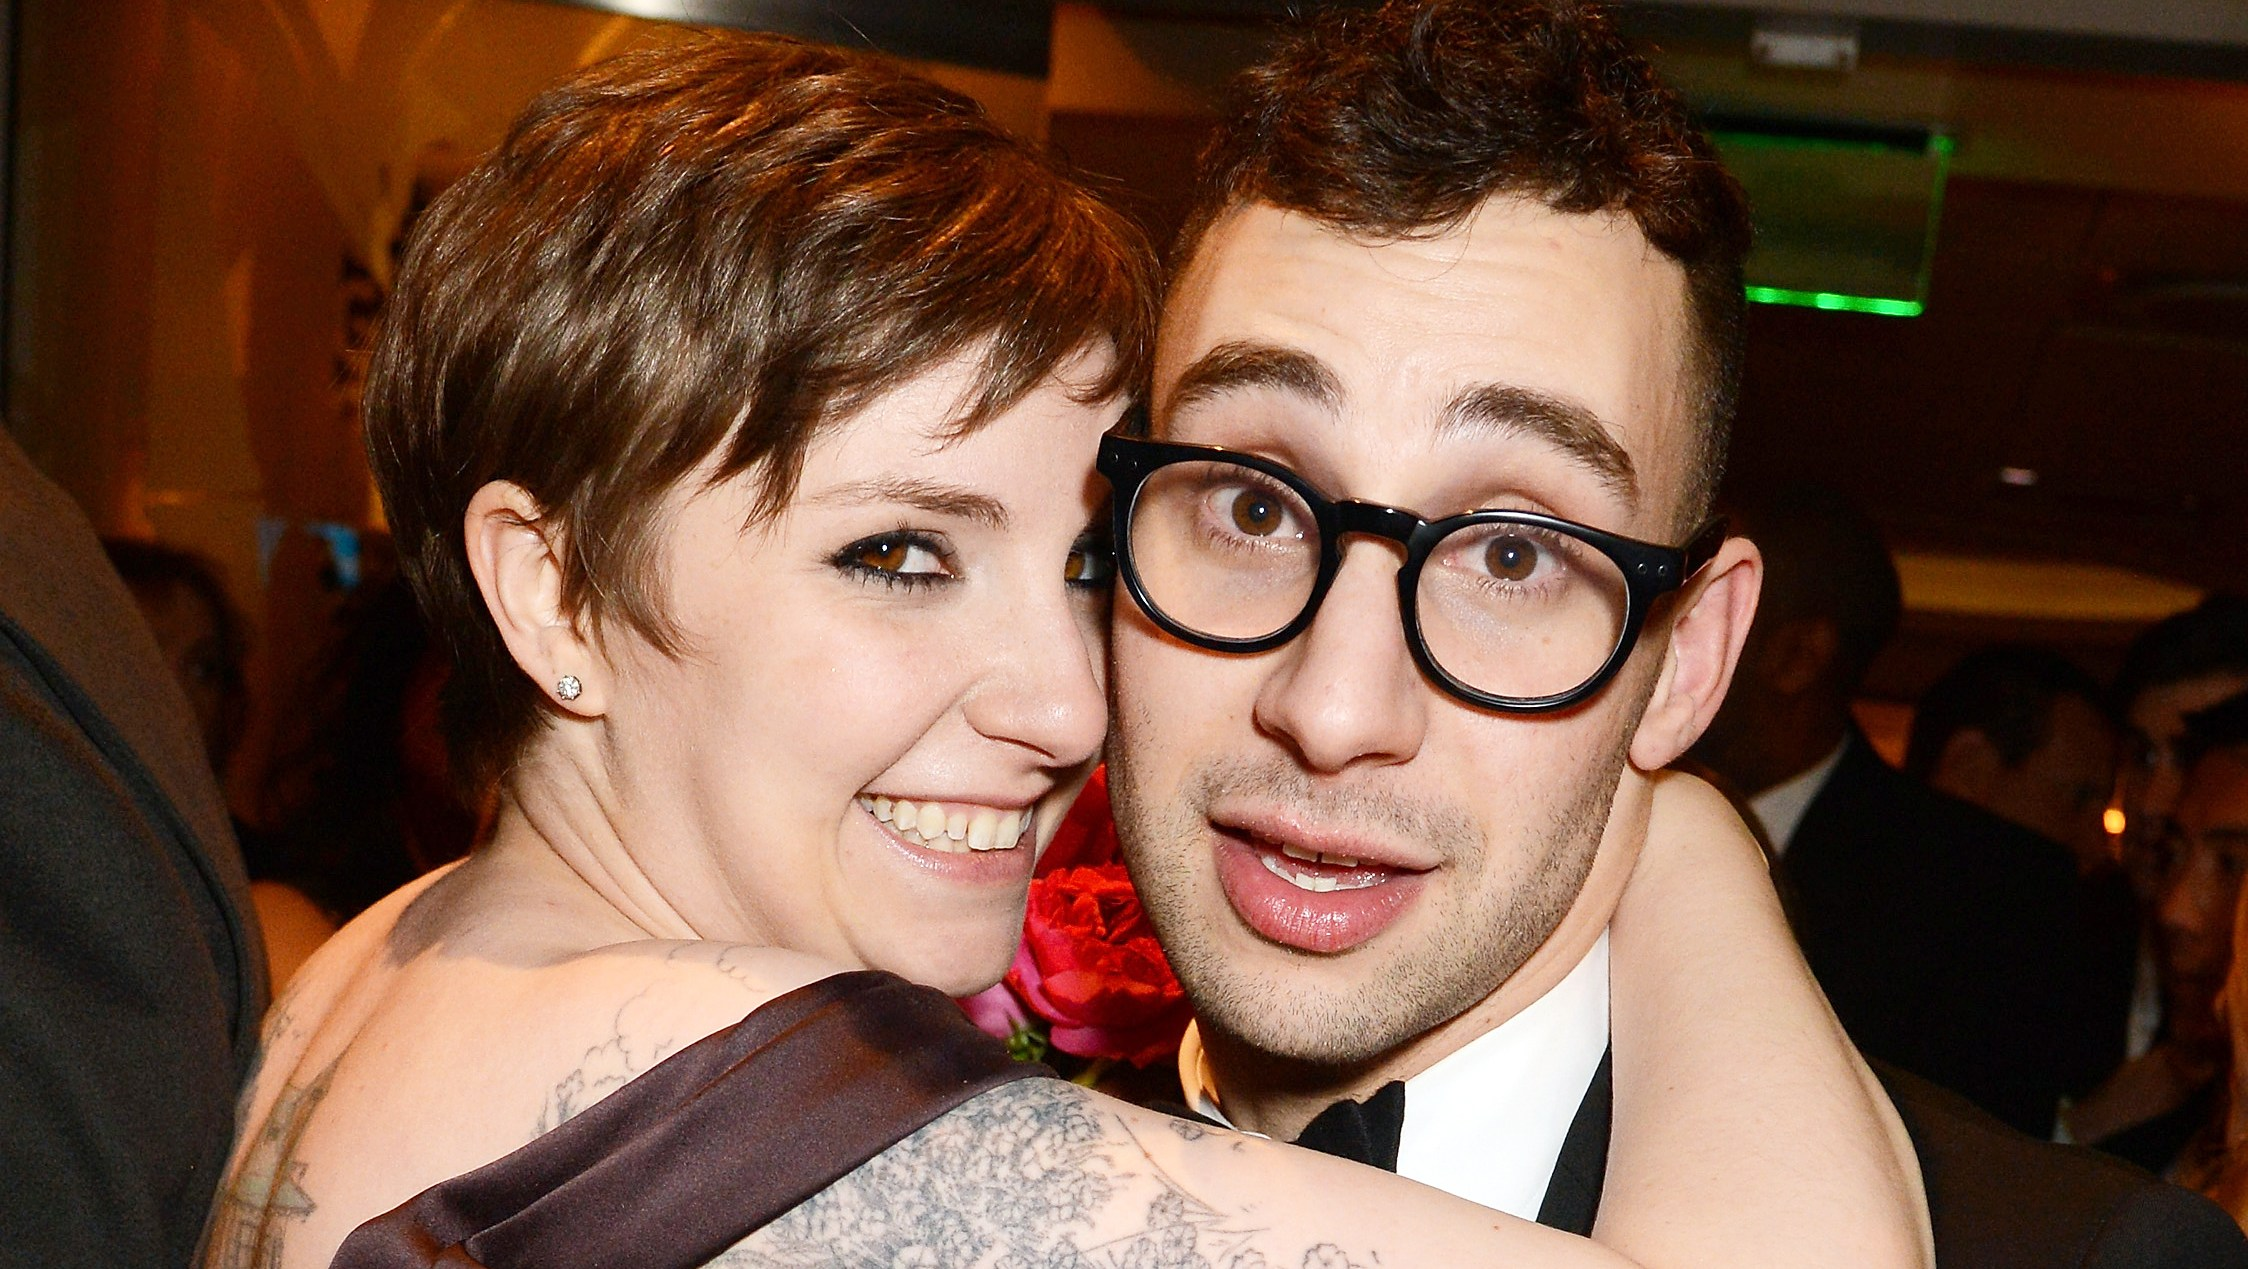 Lena Dunham Jack Antonoff The Way They Were